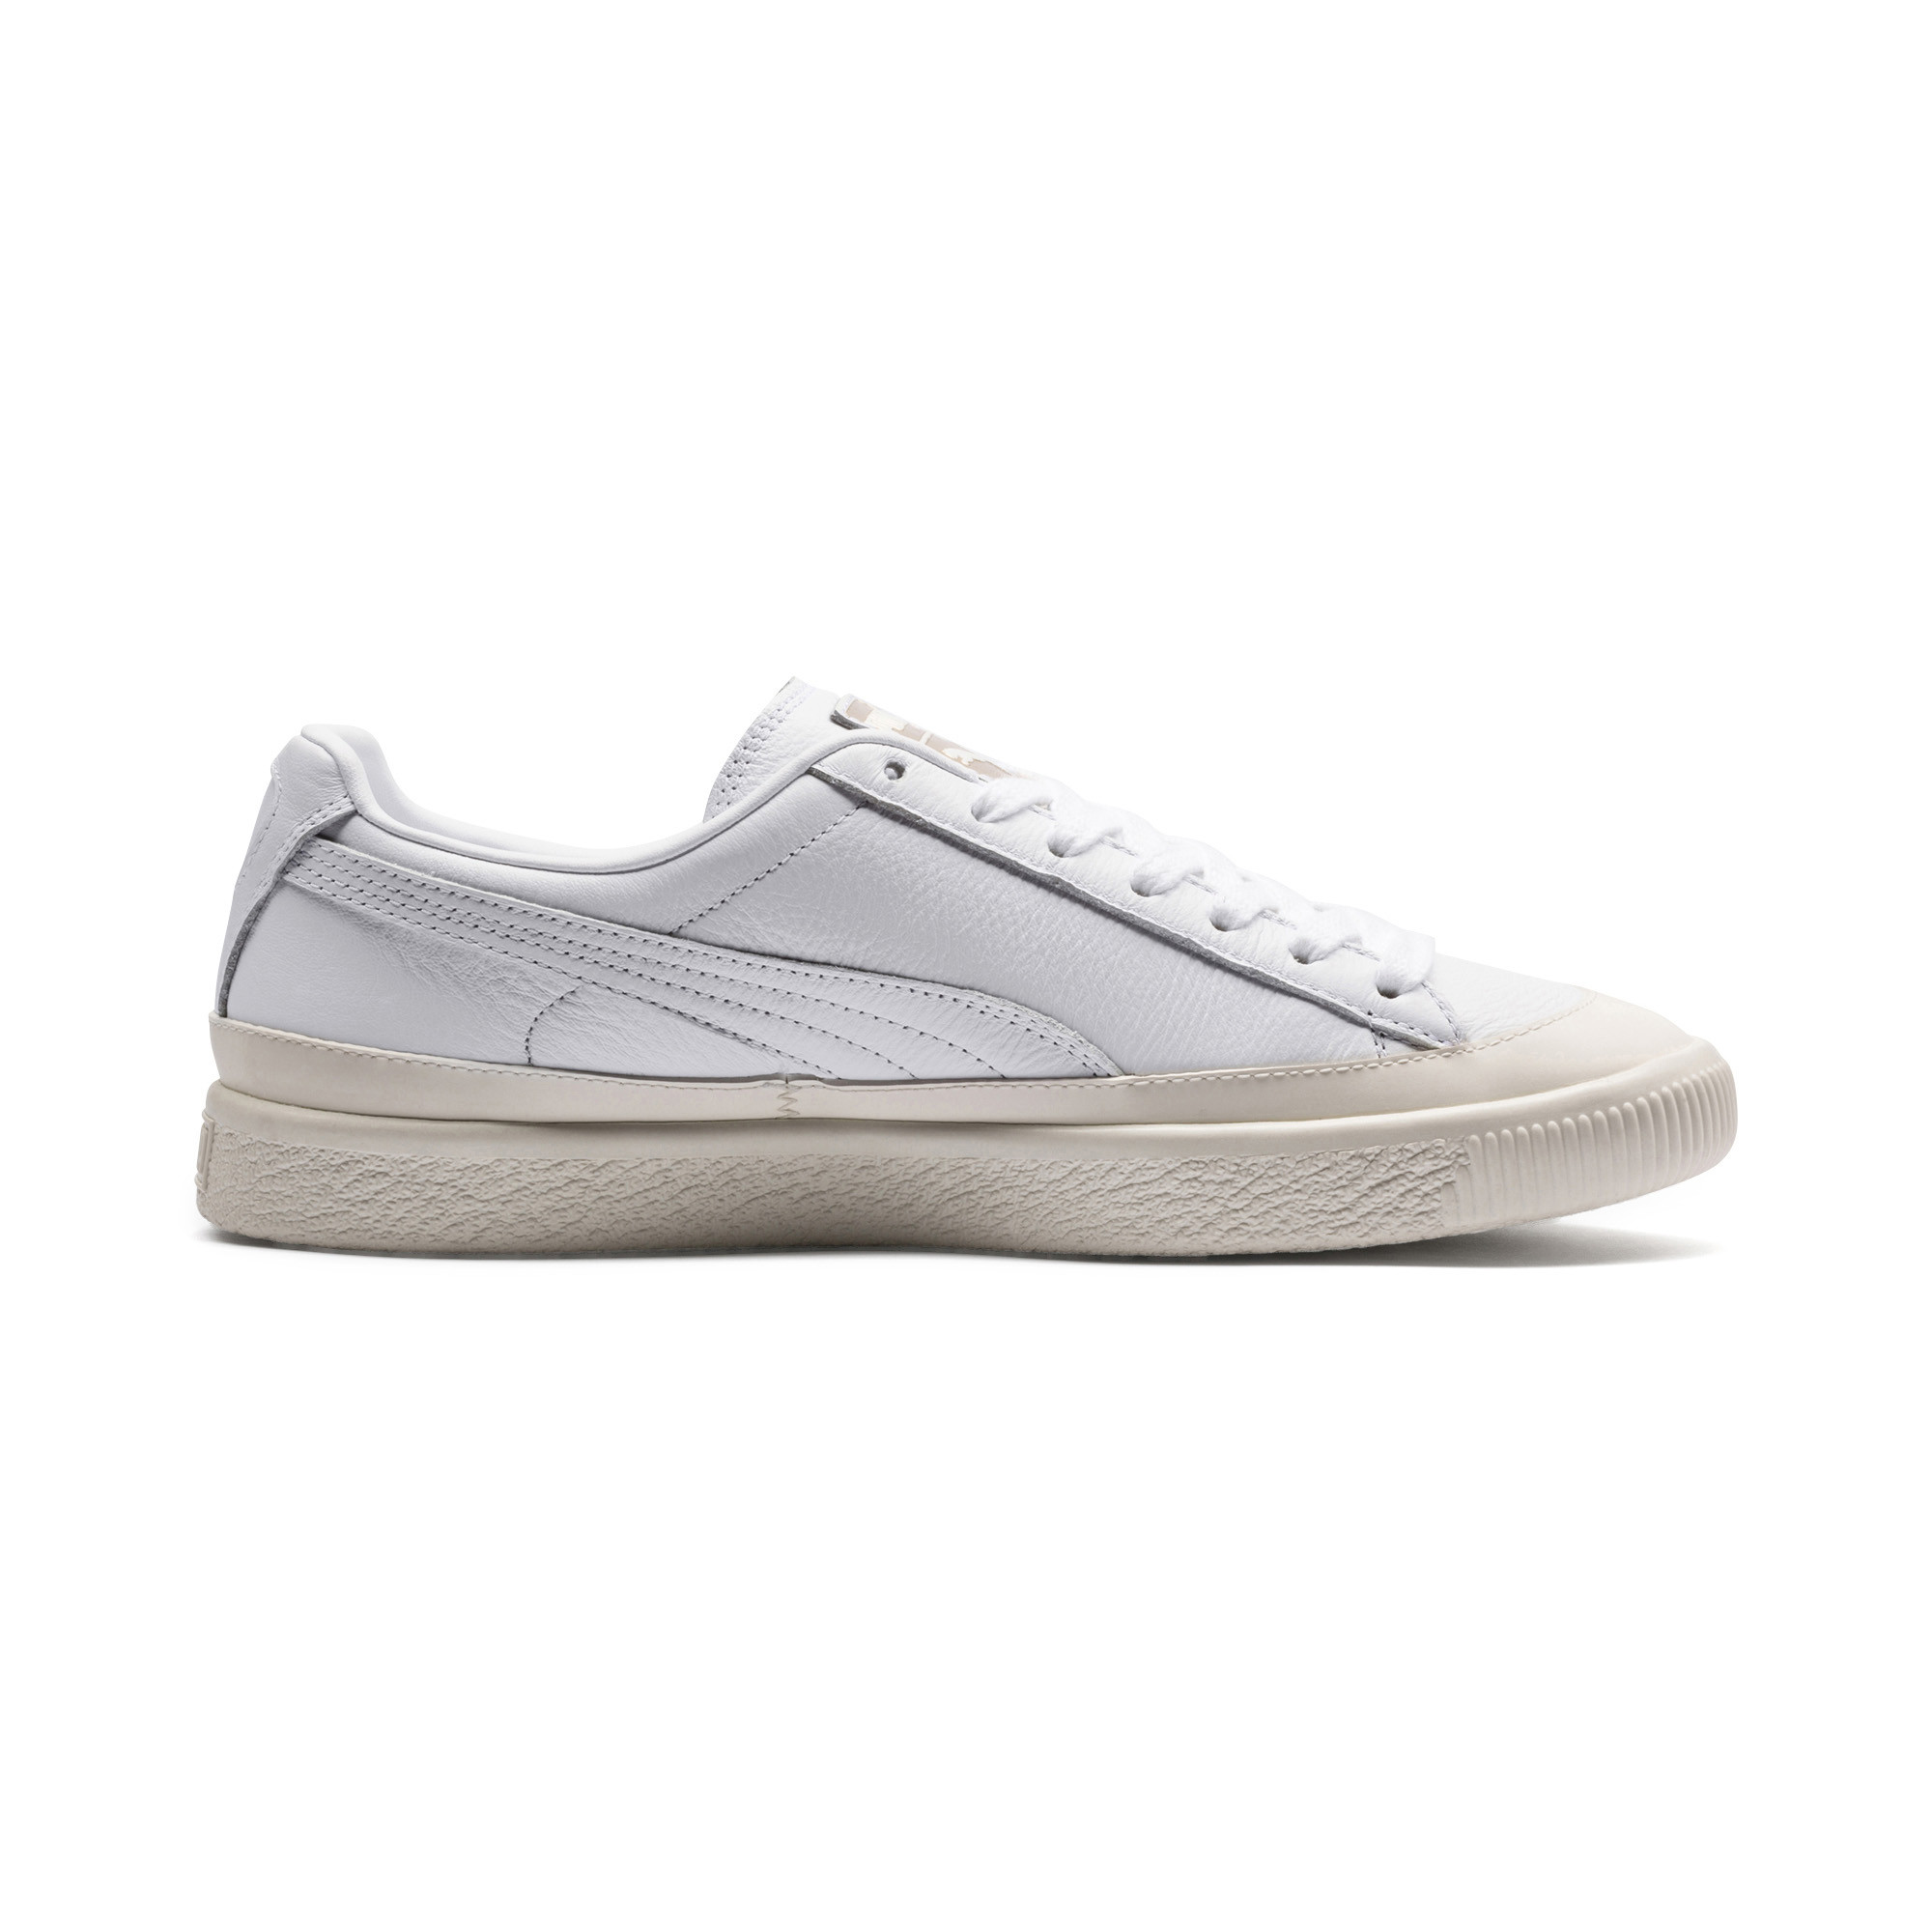 Image Puma Clyde Rubber Toe Leather Sneakers #5